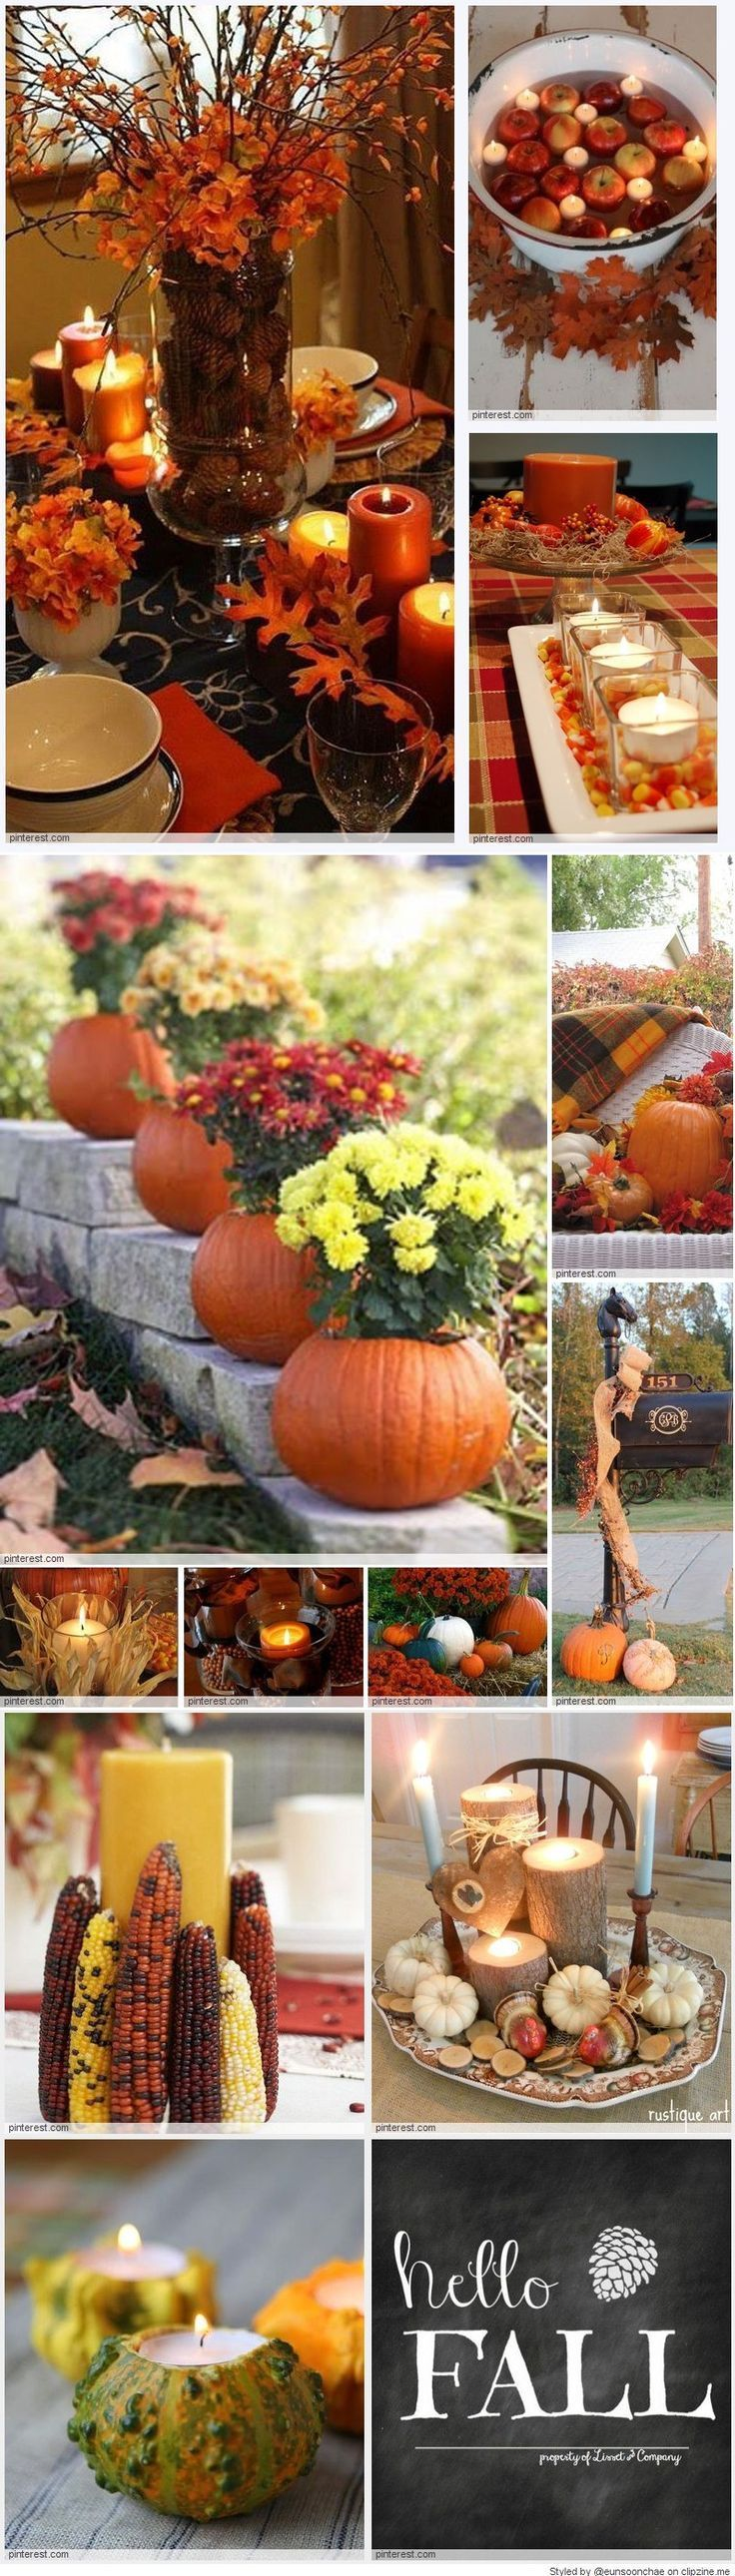 Fall decorating ideas on pinterest - Fall Decorating Ideas Pictures Photos And Images For Facebook Tumblr Pinterest